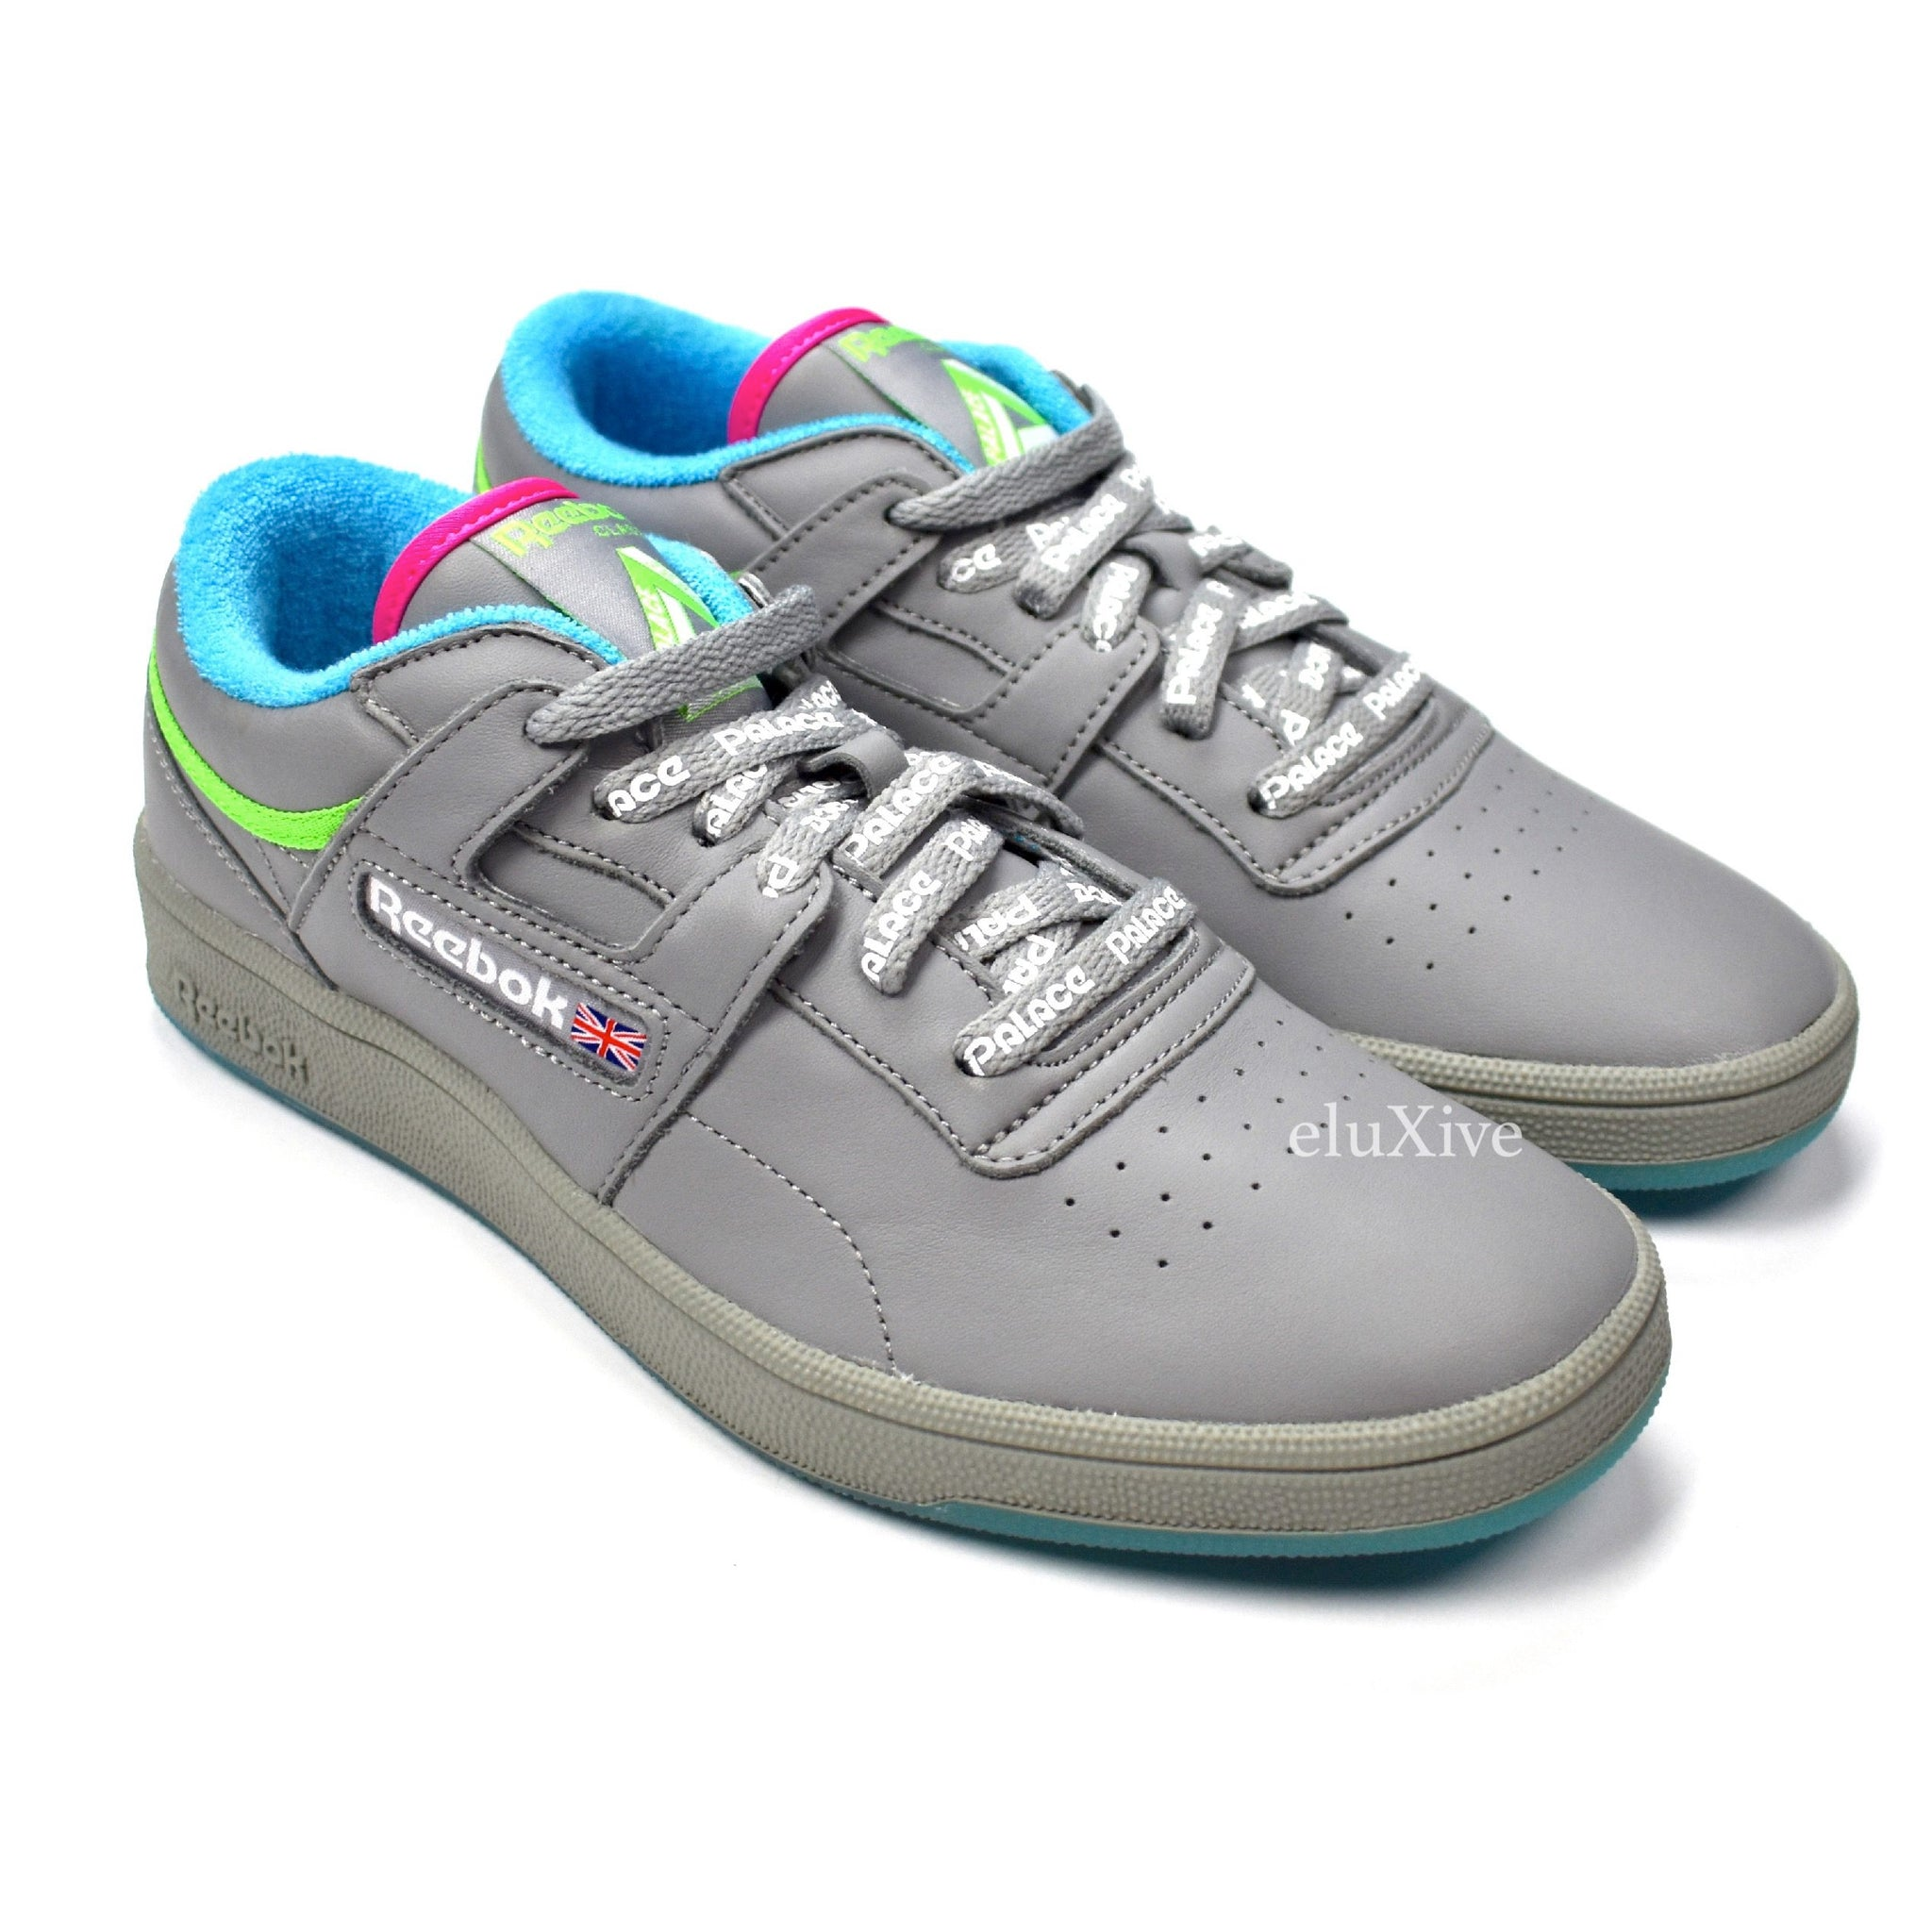 8fb41271adf6a1 Palace x Reebok - Gray Leather Club Workout Retro Logo Sneakers ...